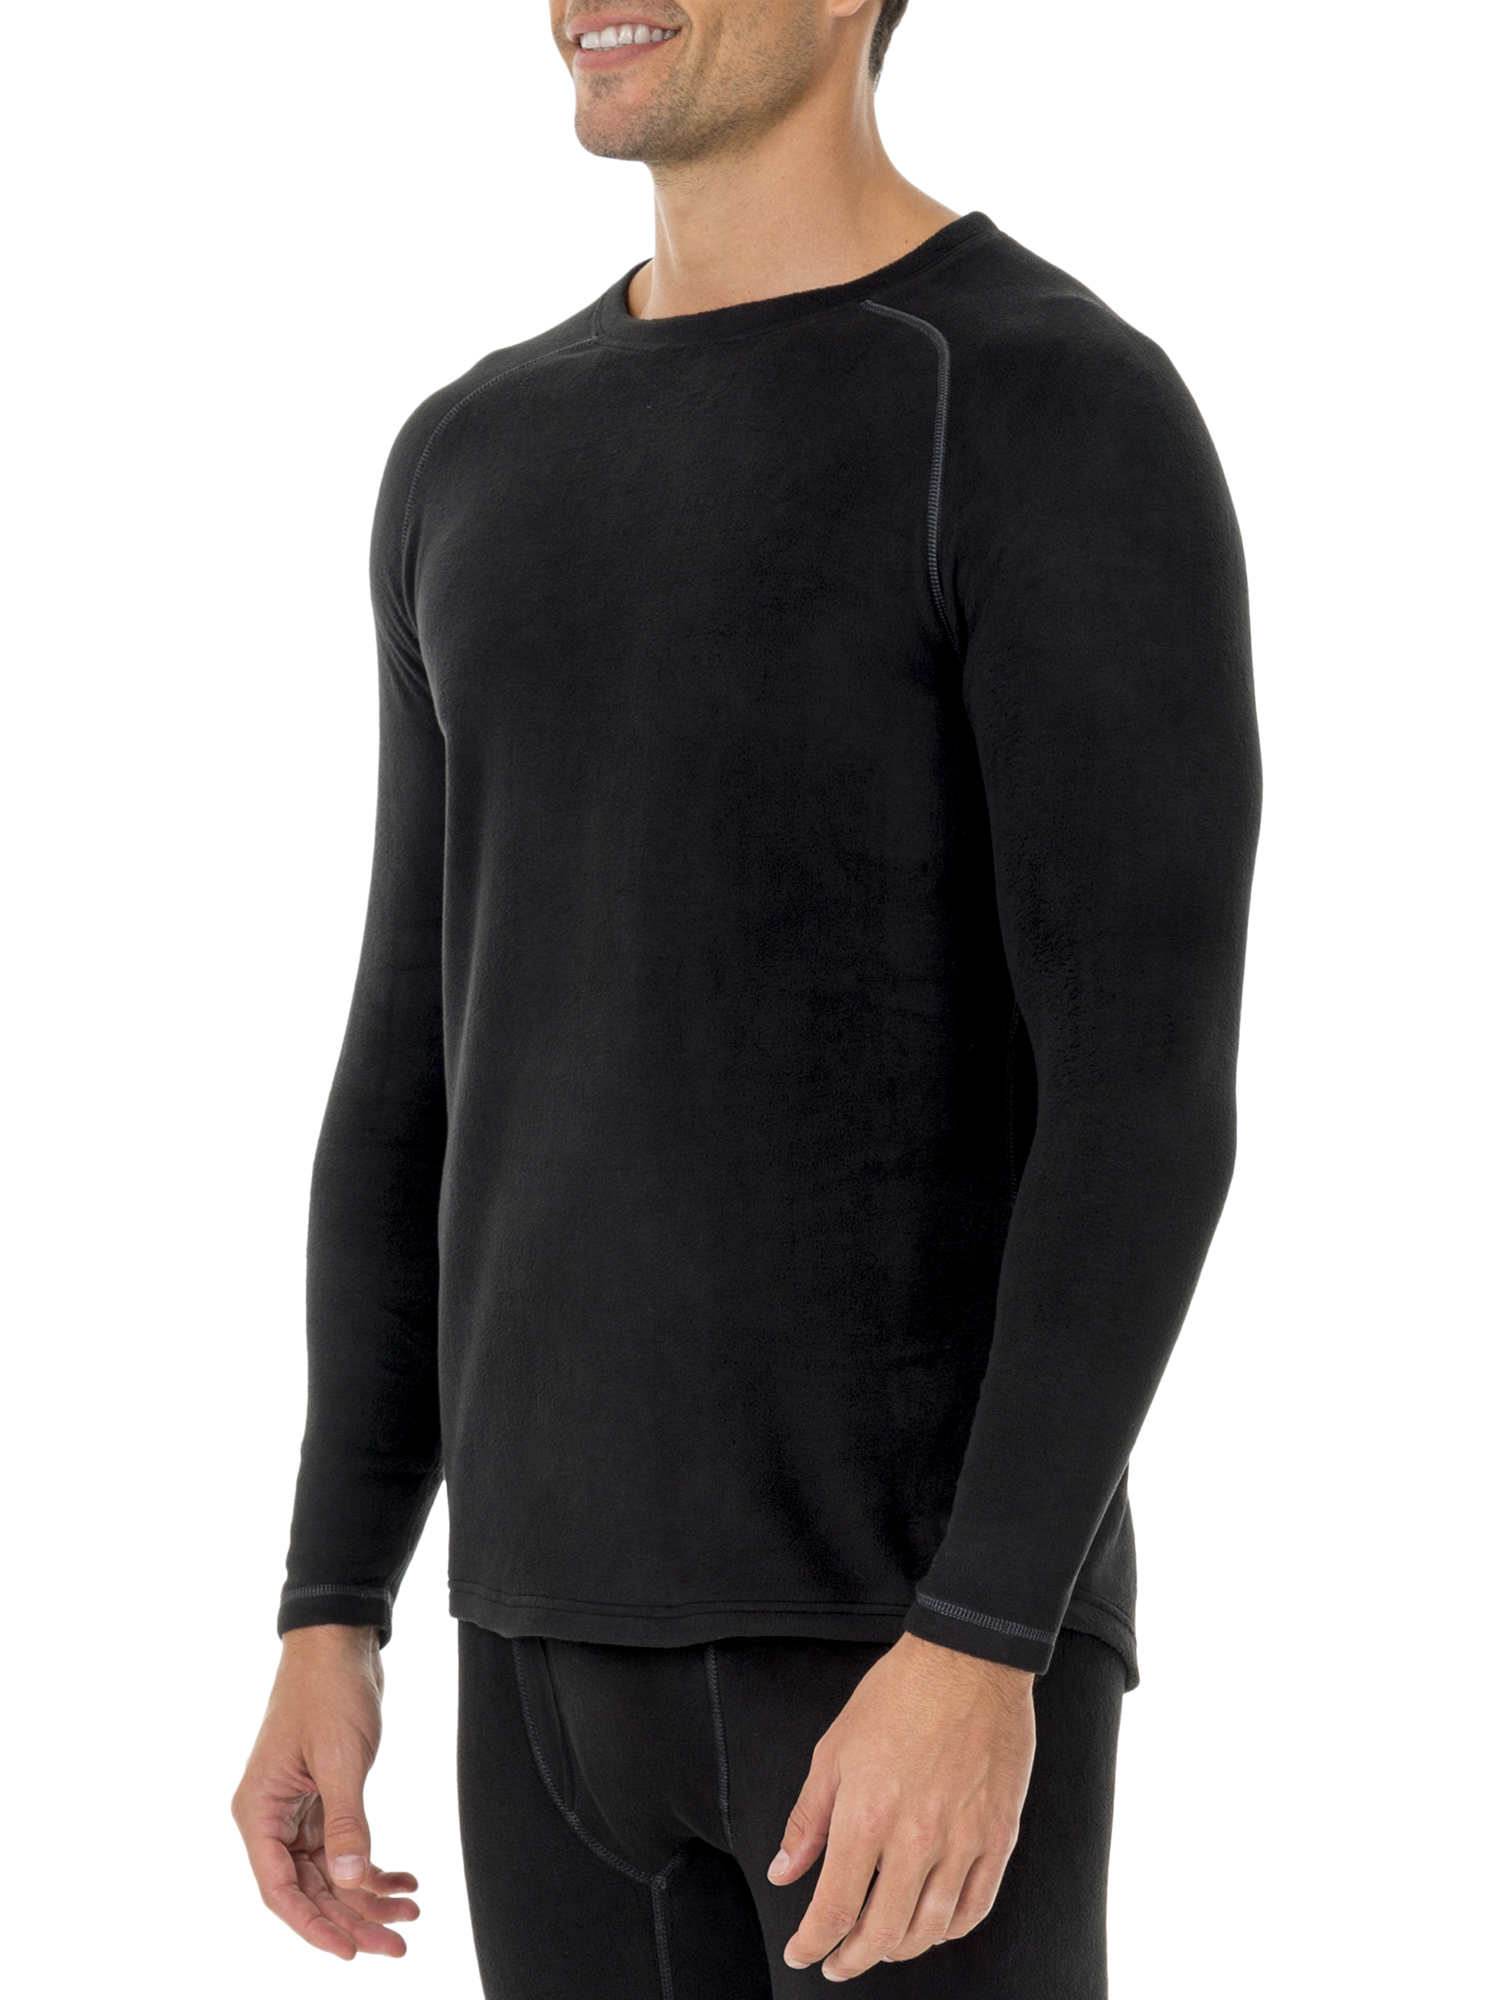 Big Men's ThermaForce Stretch Fleece Baselayer Thermal L4 Shirt